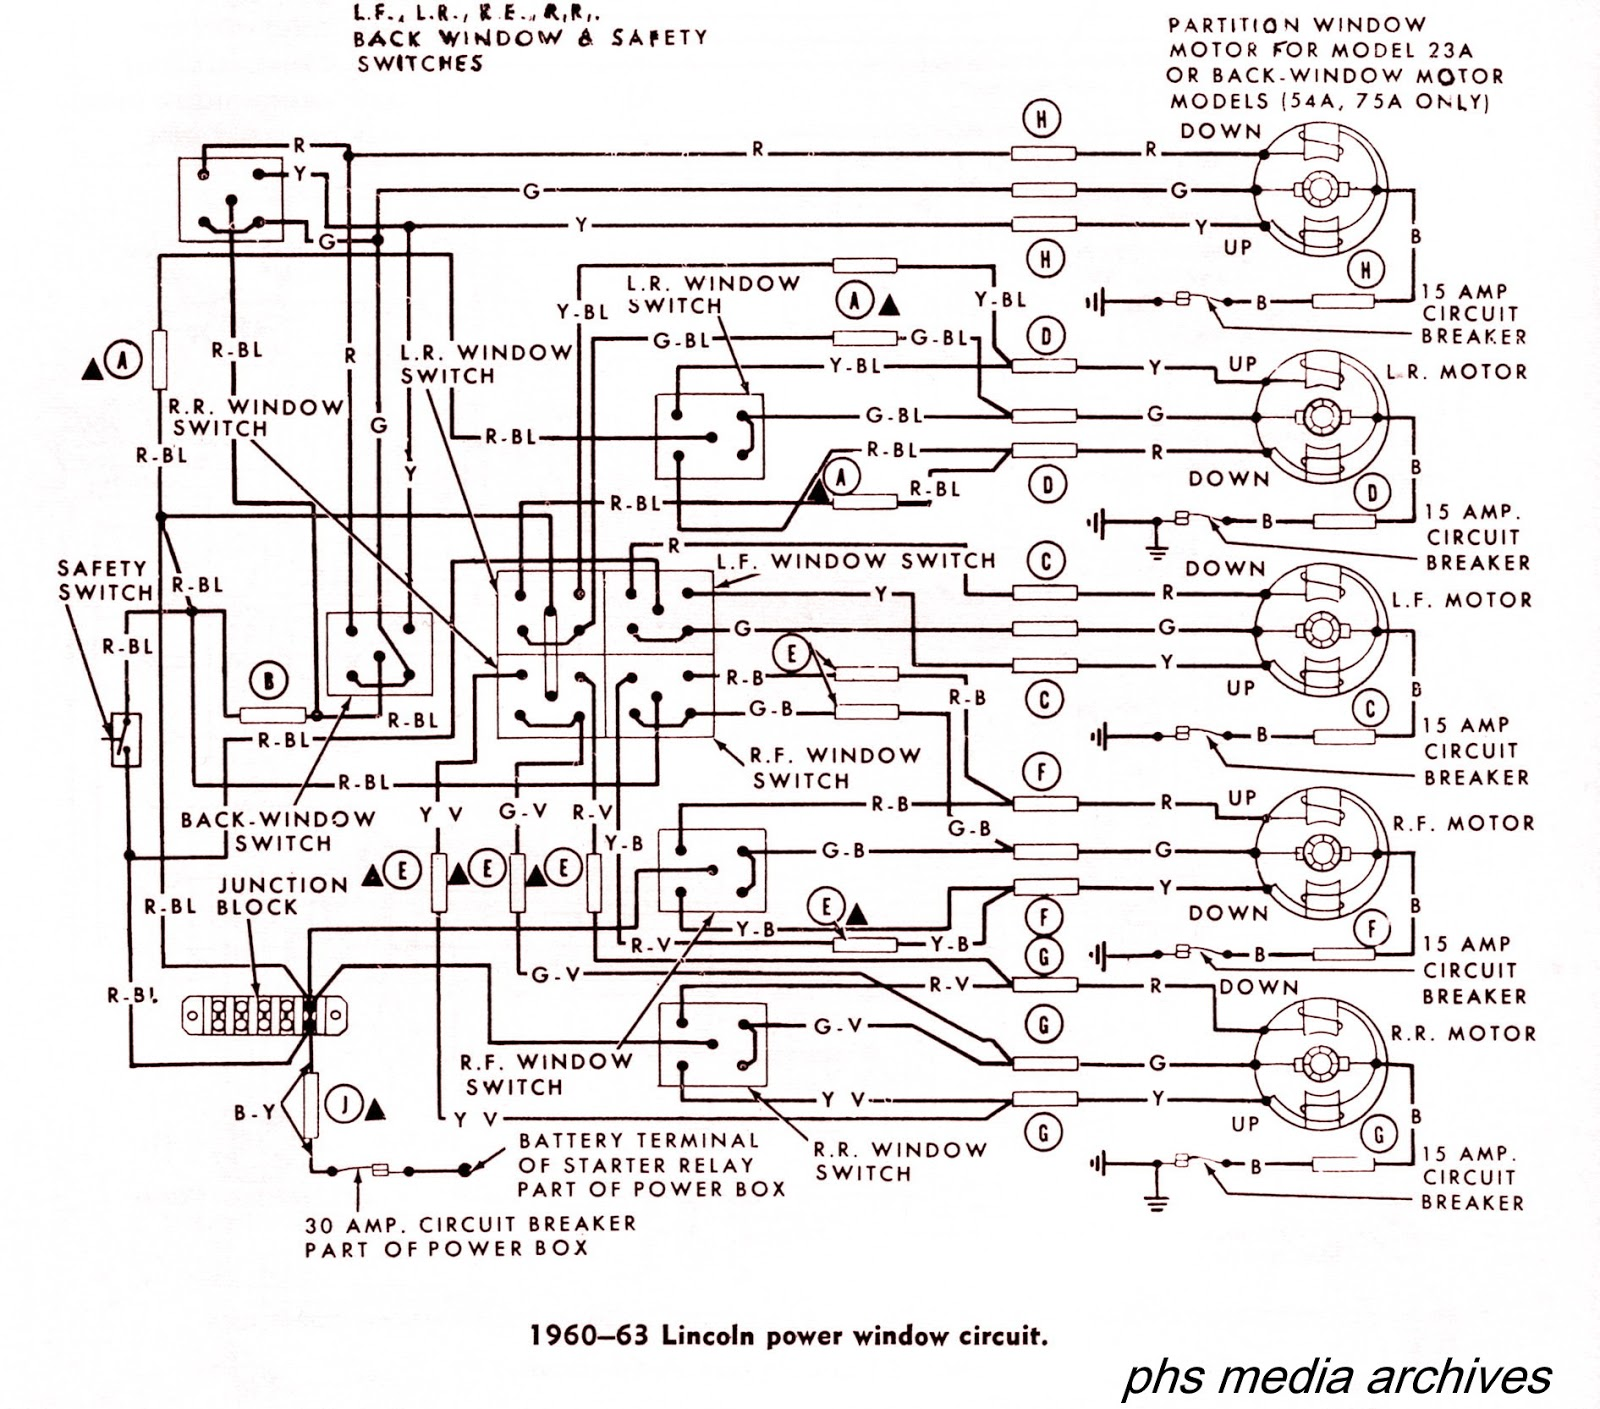 Tech Series 1960 1964 Lincoln Wiring Diagrams Phscollectorcarworld Nhra Car Diagram Right Click On Image For Enlargement